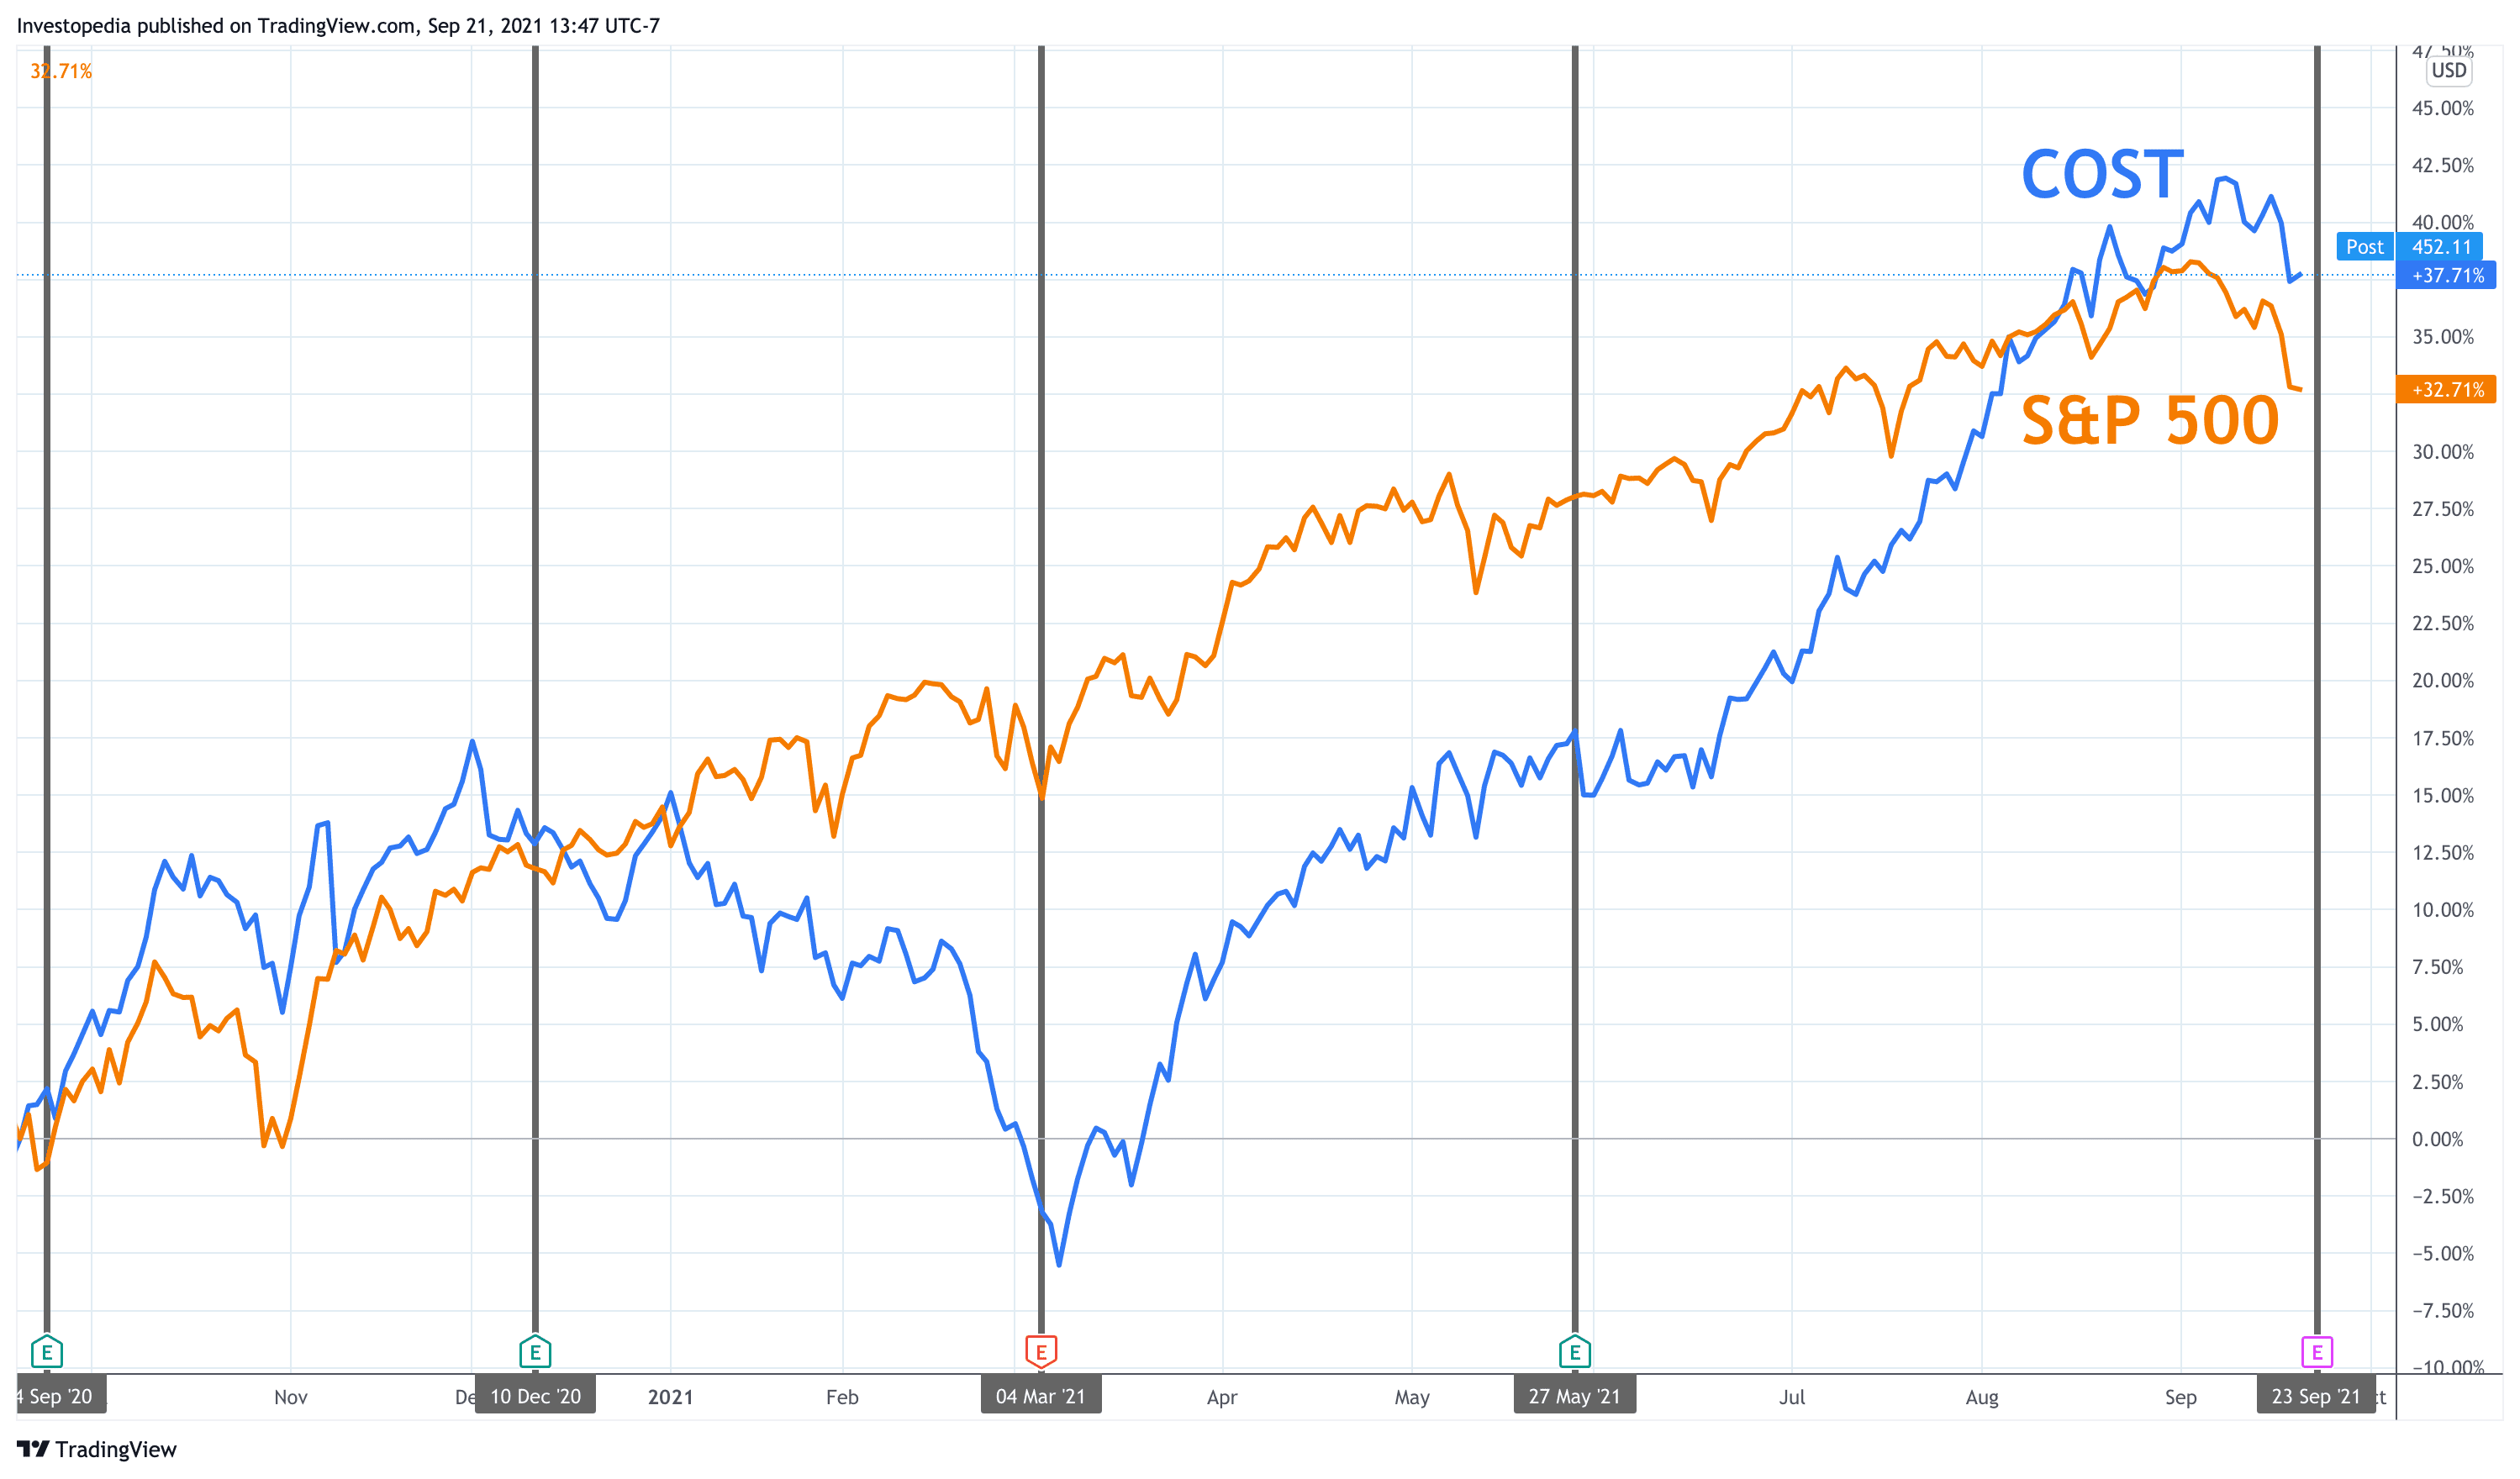 One Year Total Return for S&P 500 and Costco